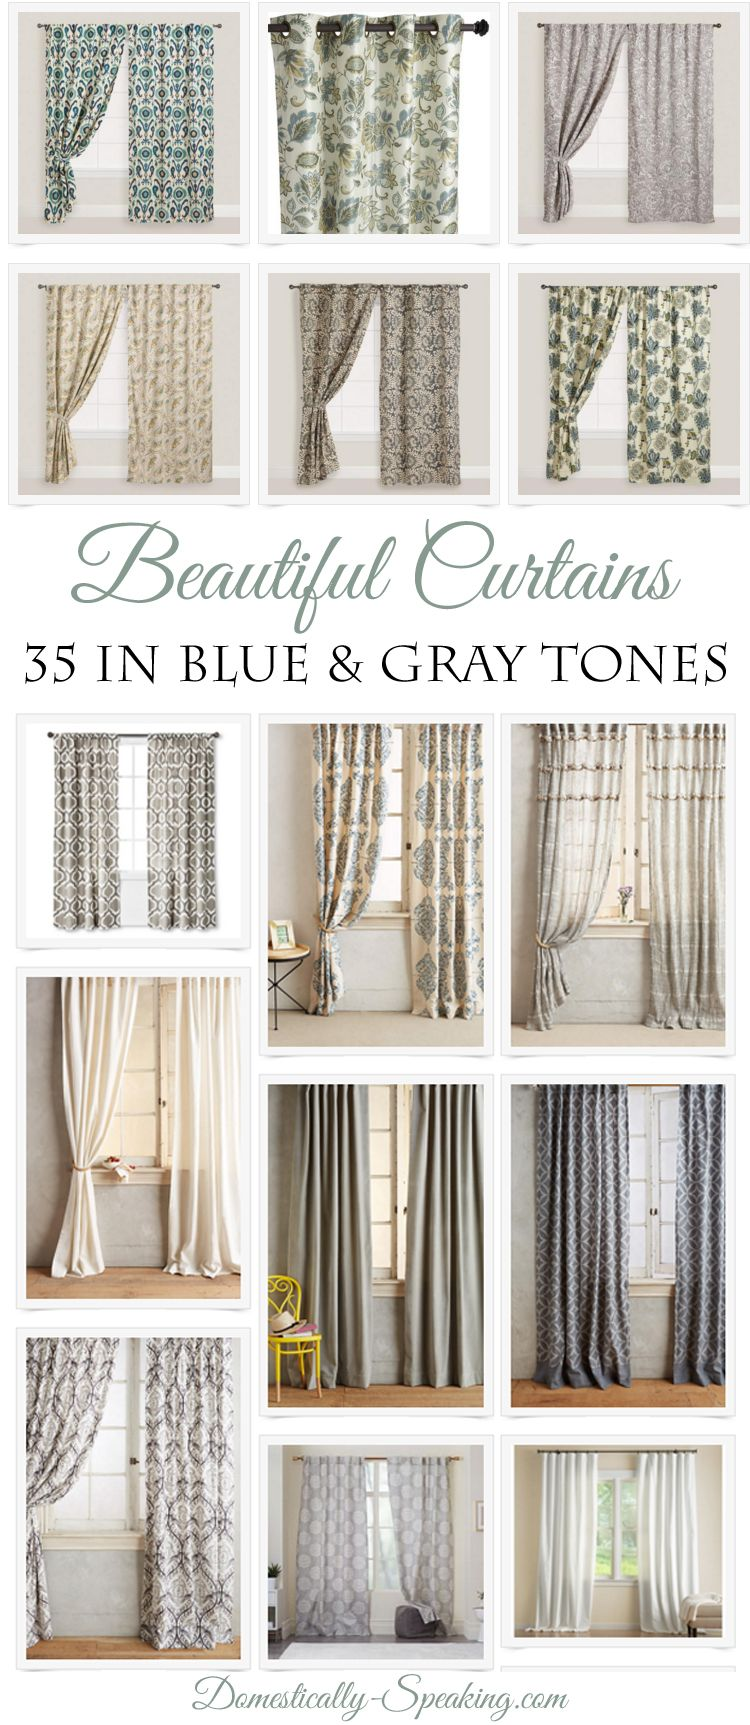 35 beautiful curtains | for the home | curtains, beautiful curtains